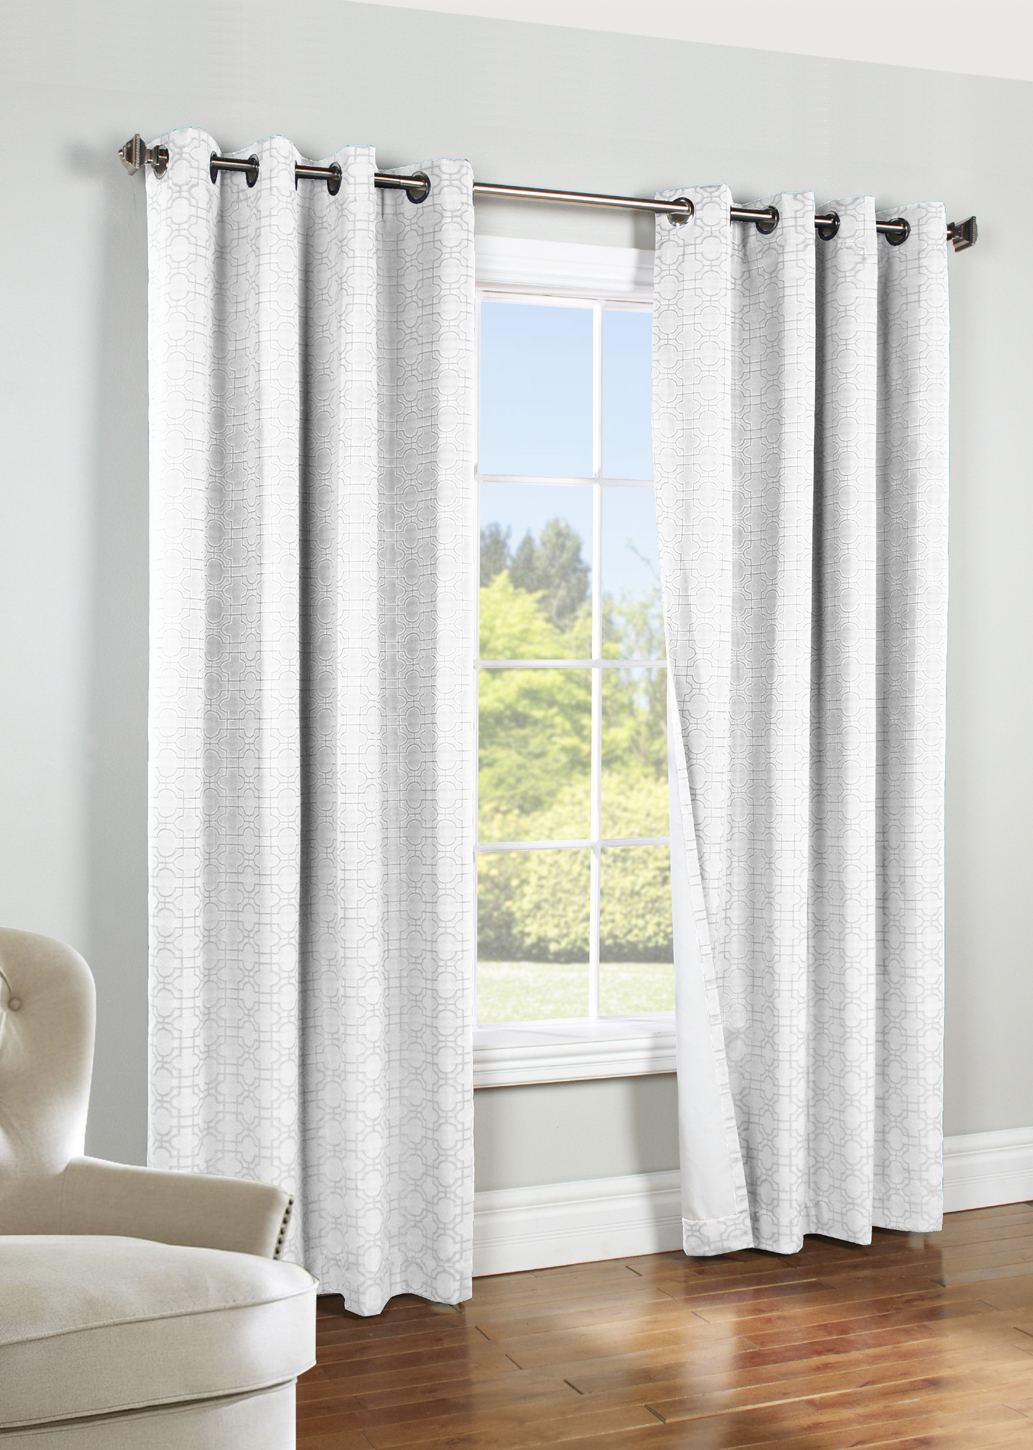 Irongate Insulated Blackout Grommet Curtain Panel – Thermaplus Inside Insulated Grommet Blackout Curtain Panel Pairs (View 11 of 20)